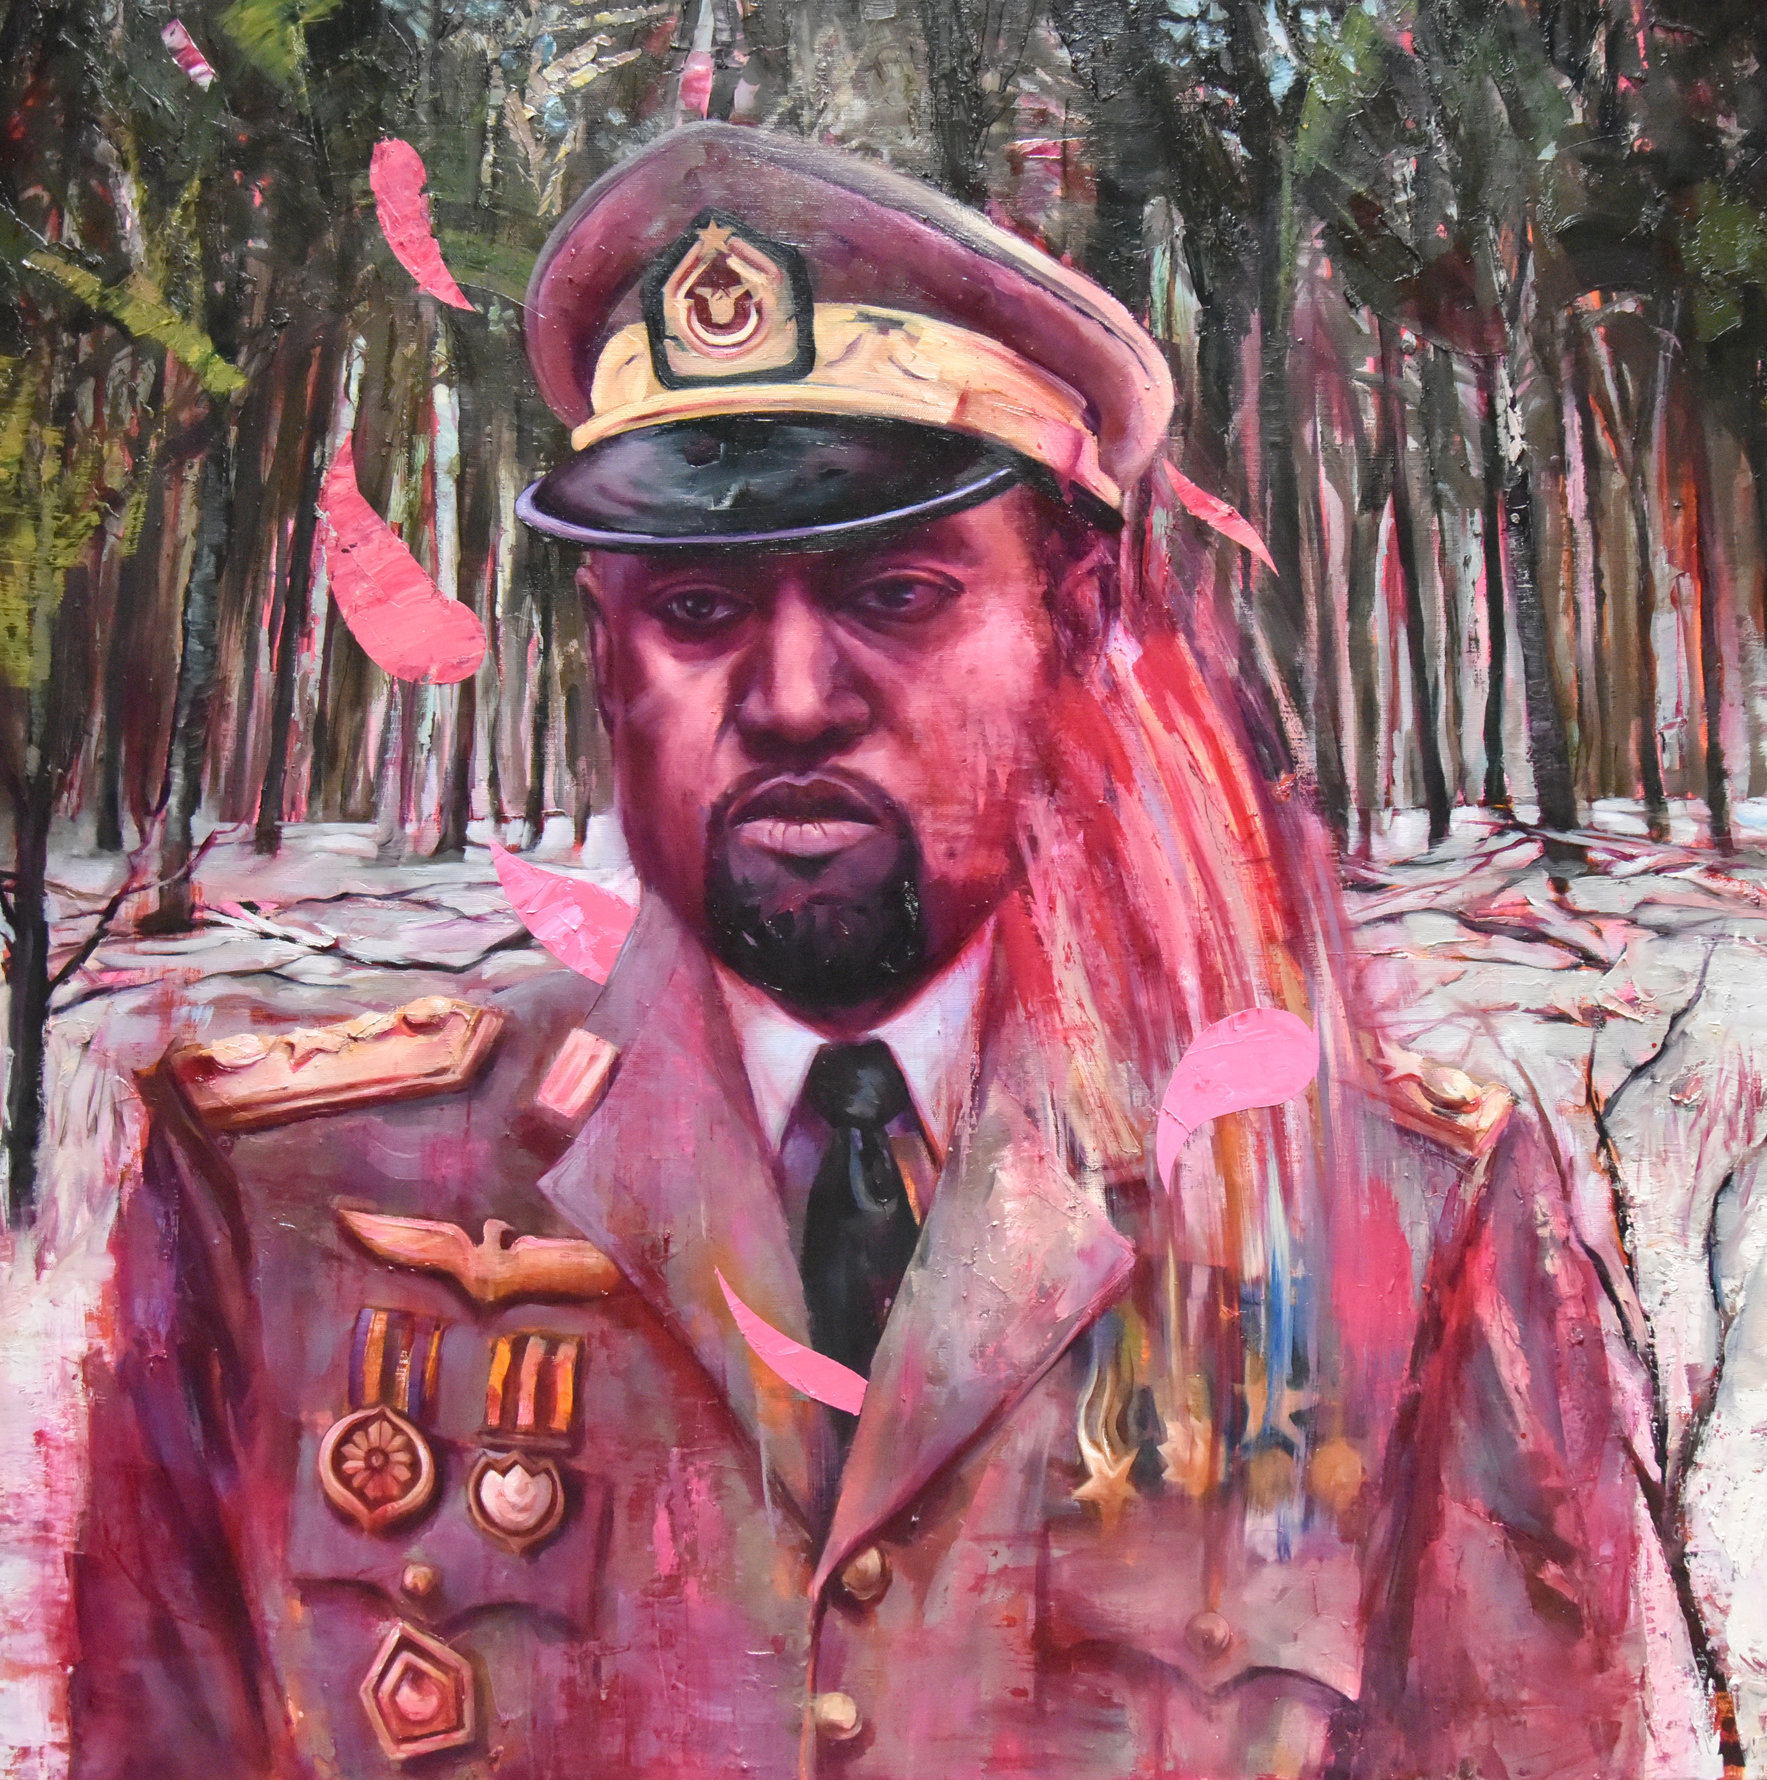 General West in the Forest of Chaos